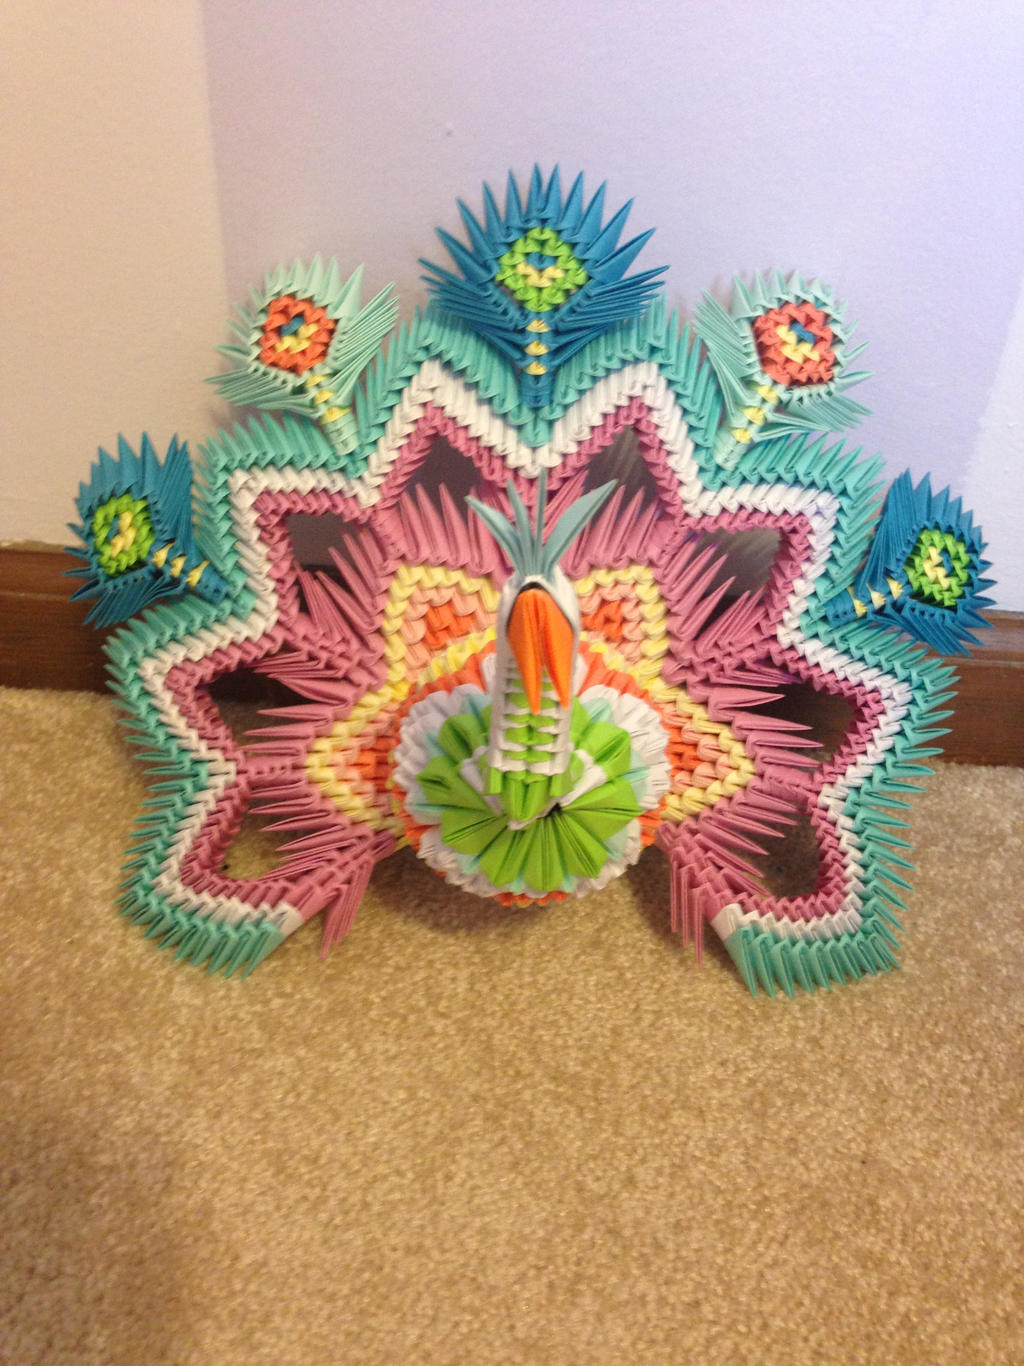 3D Origami Peacock by doodlenoodle2173 on DeviantArt - photo#30